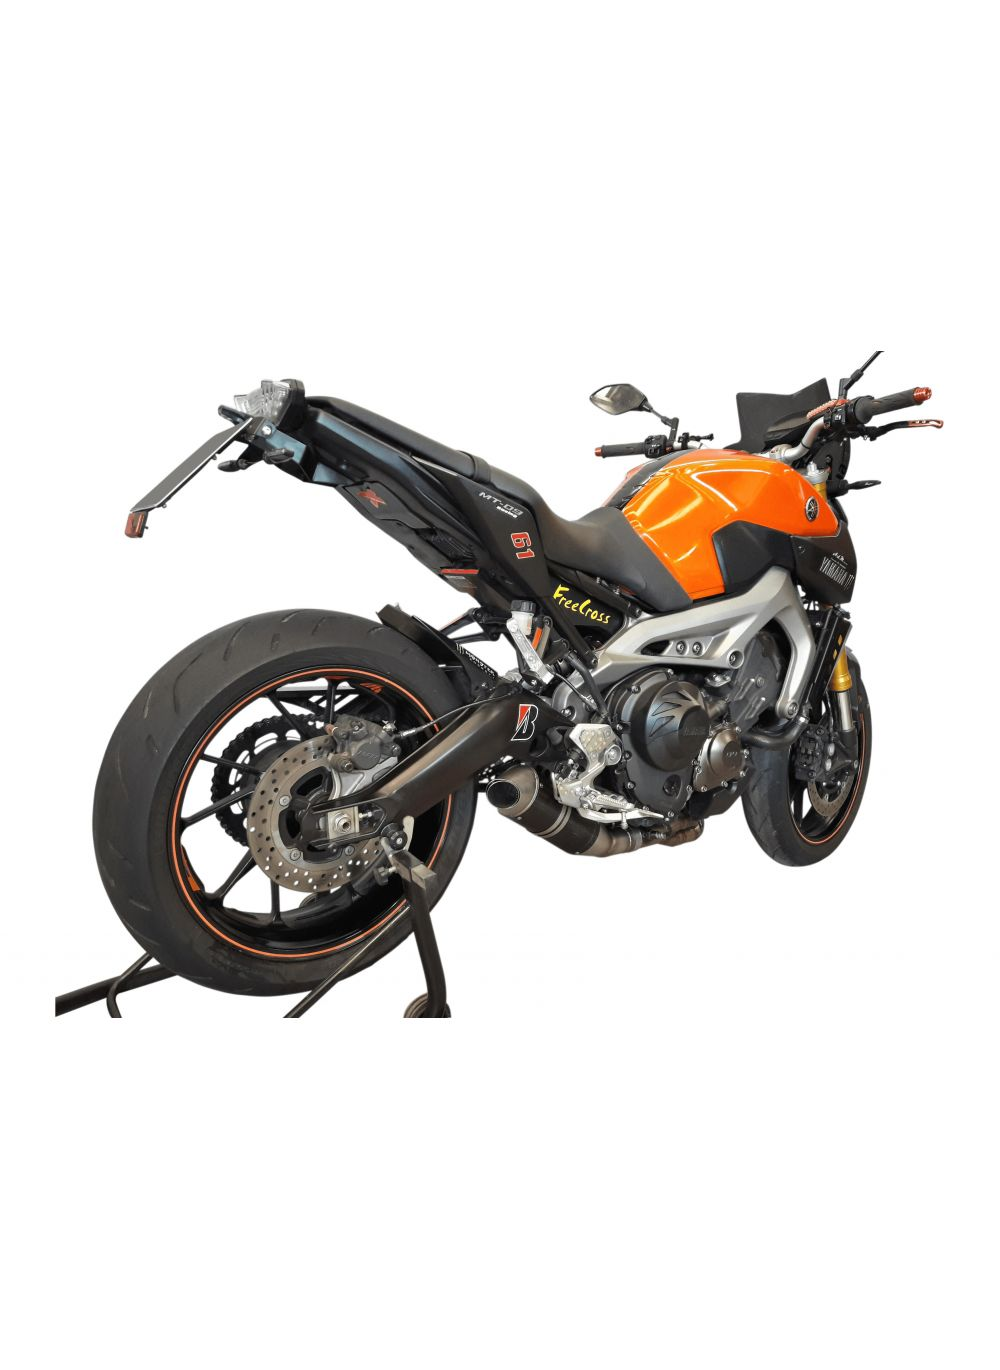 G g big oval exhaust system yamaha mt09 and tracer g g shop for Yamaha exhaust systems